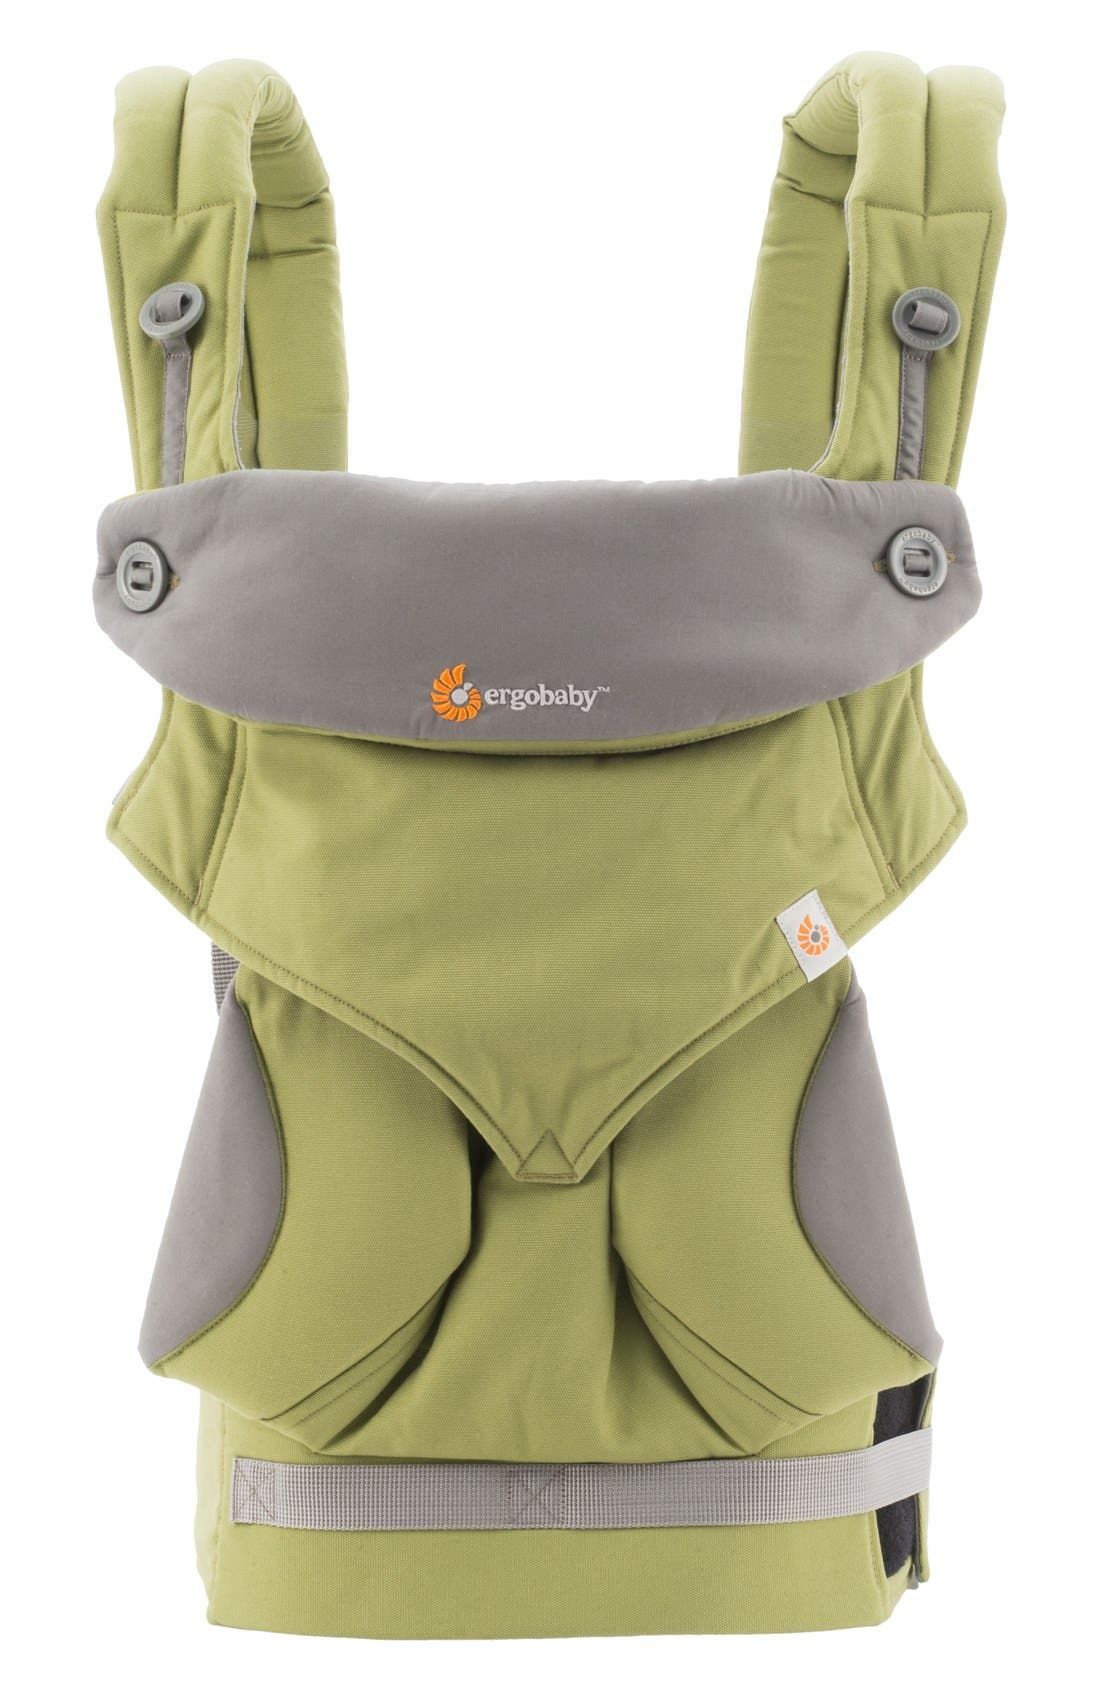 '360' Baby Carrier,                         Main,                         color, Green